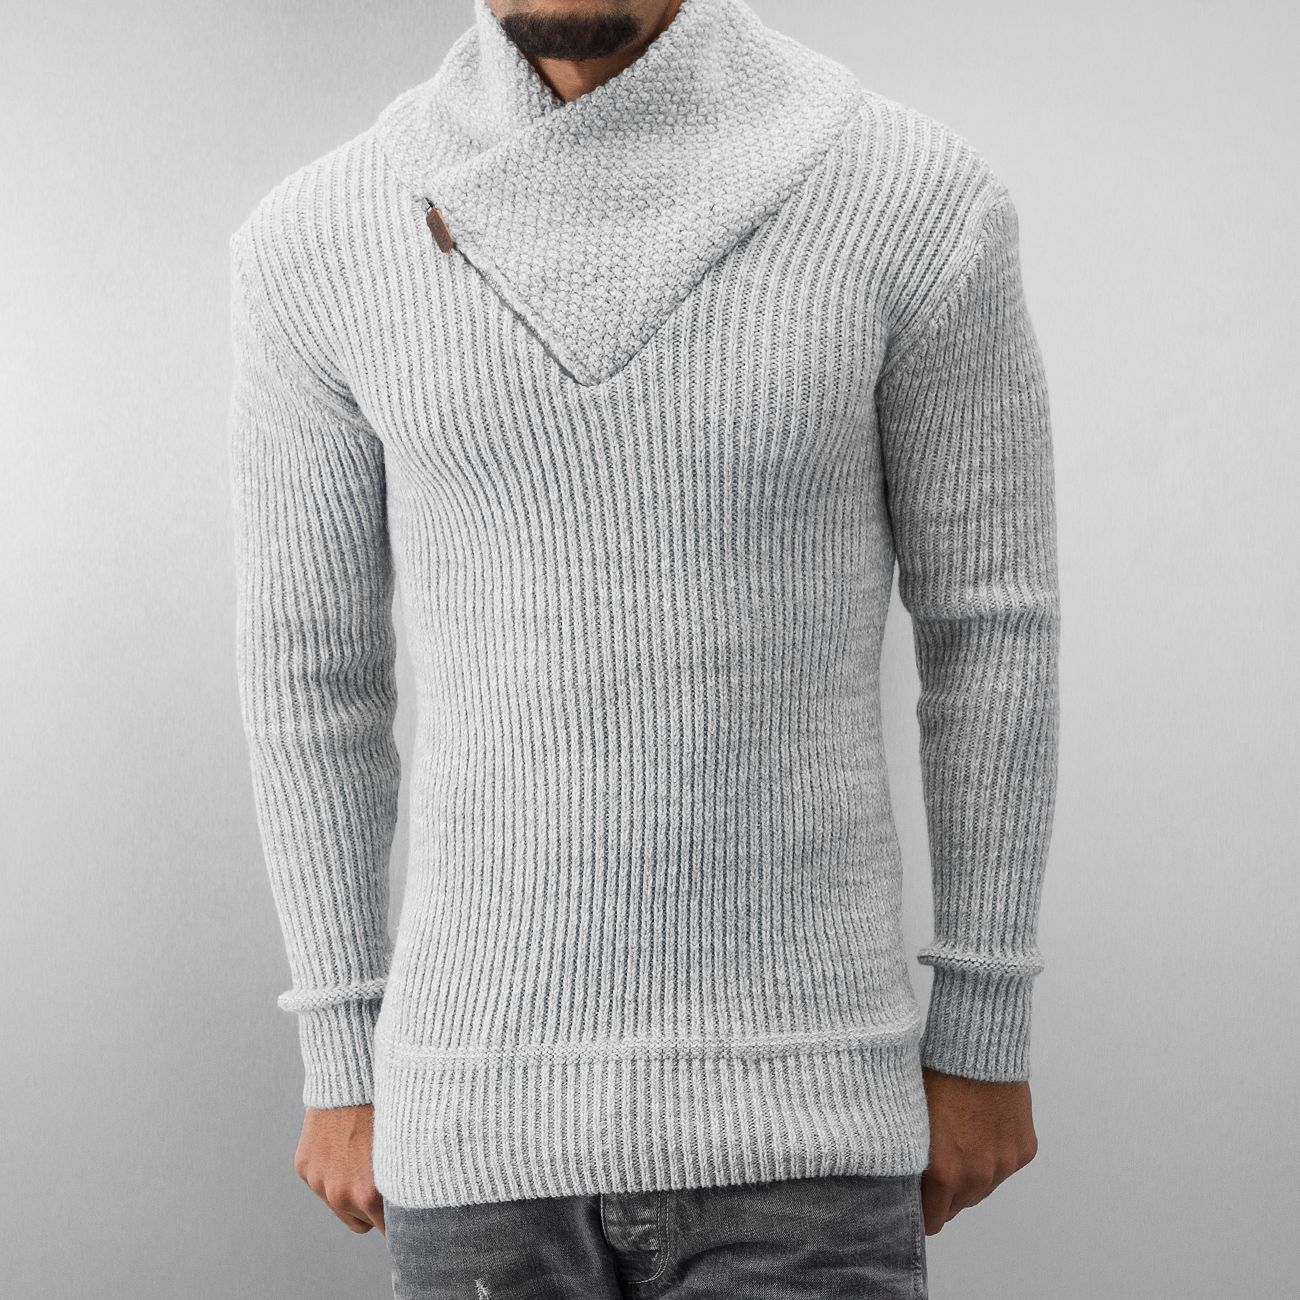 a1bd1431a91 Pull homme classe gris 7129